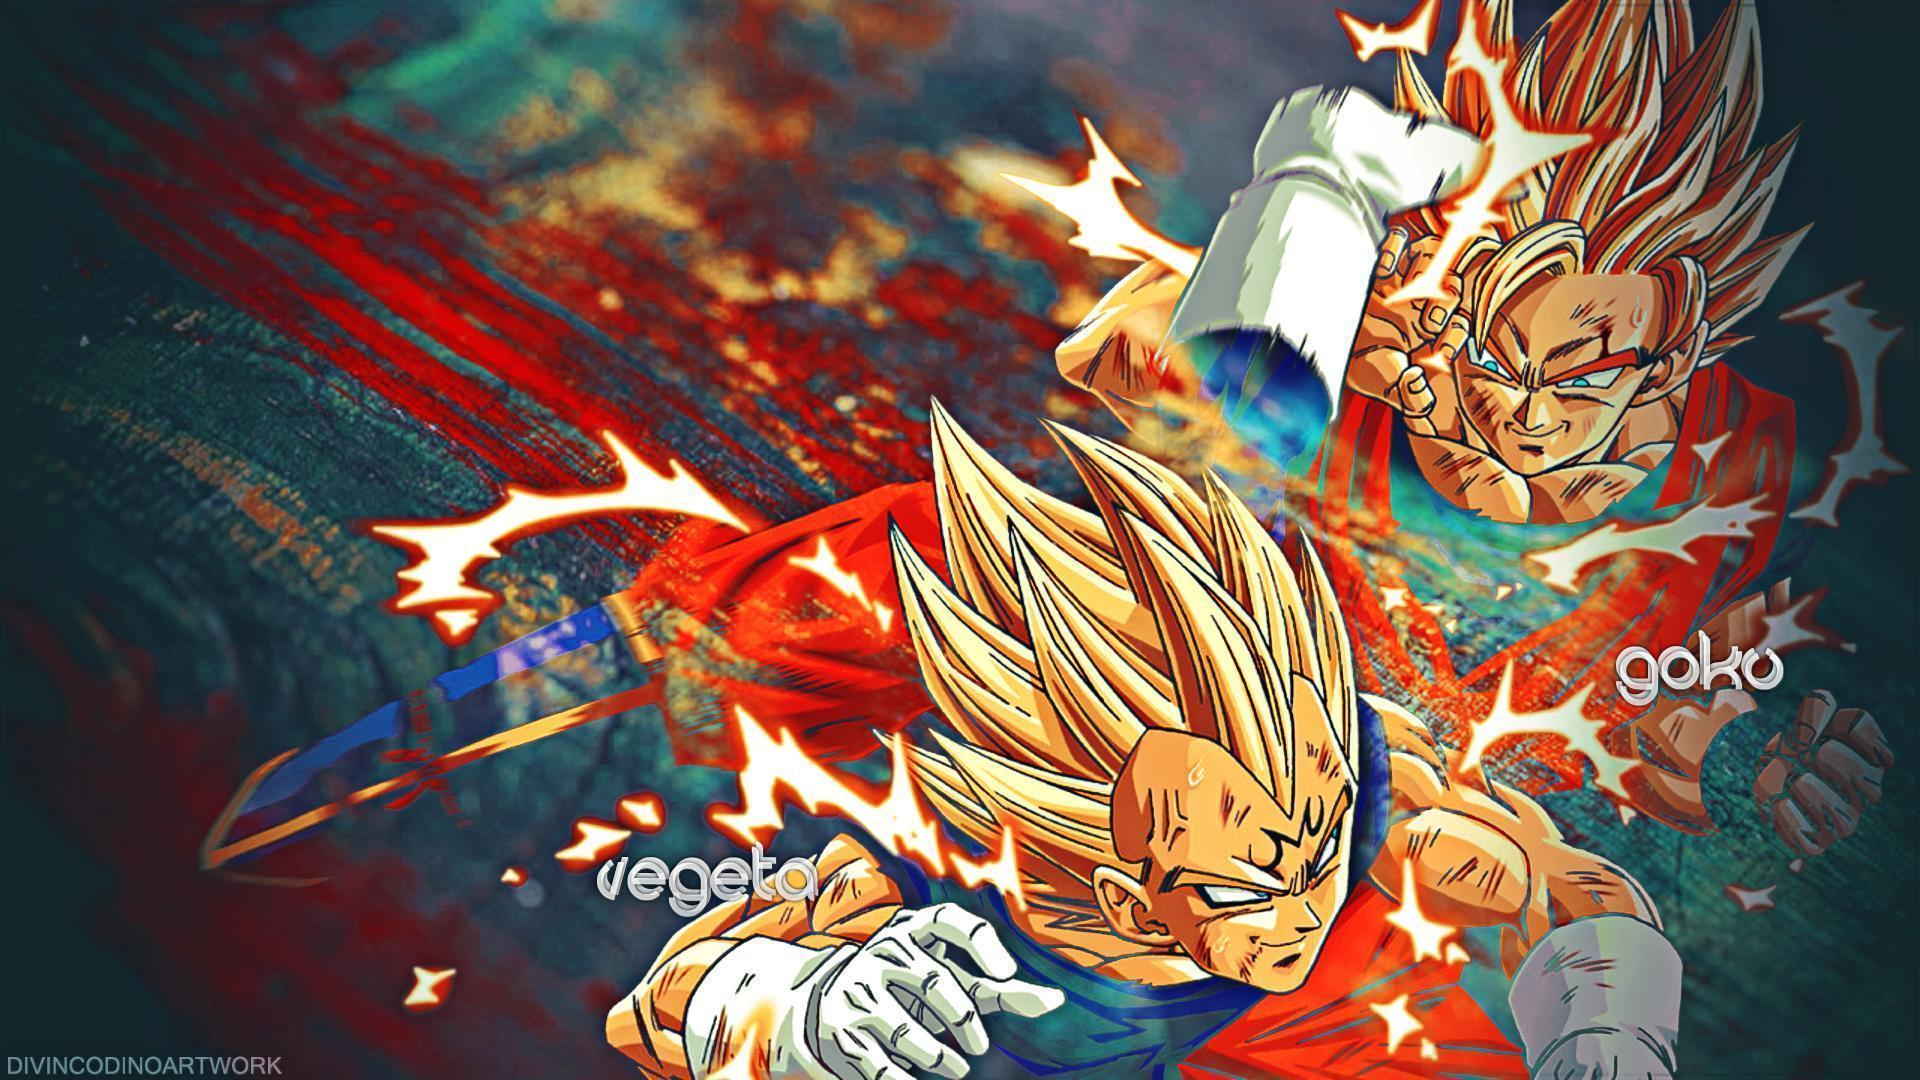 dragon ball z hd wallpapers - wallpaper cave